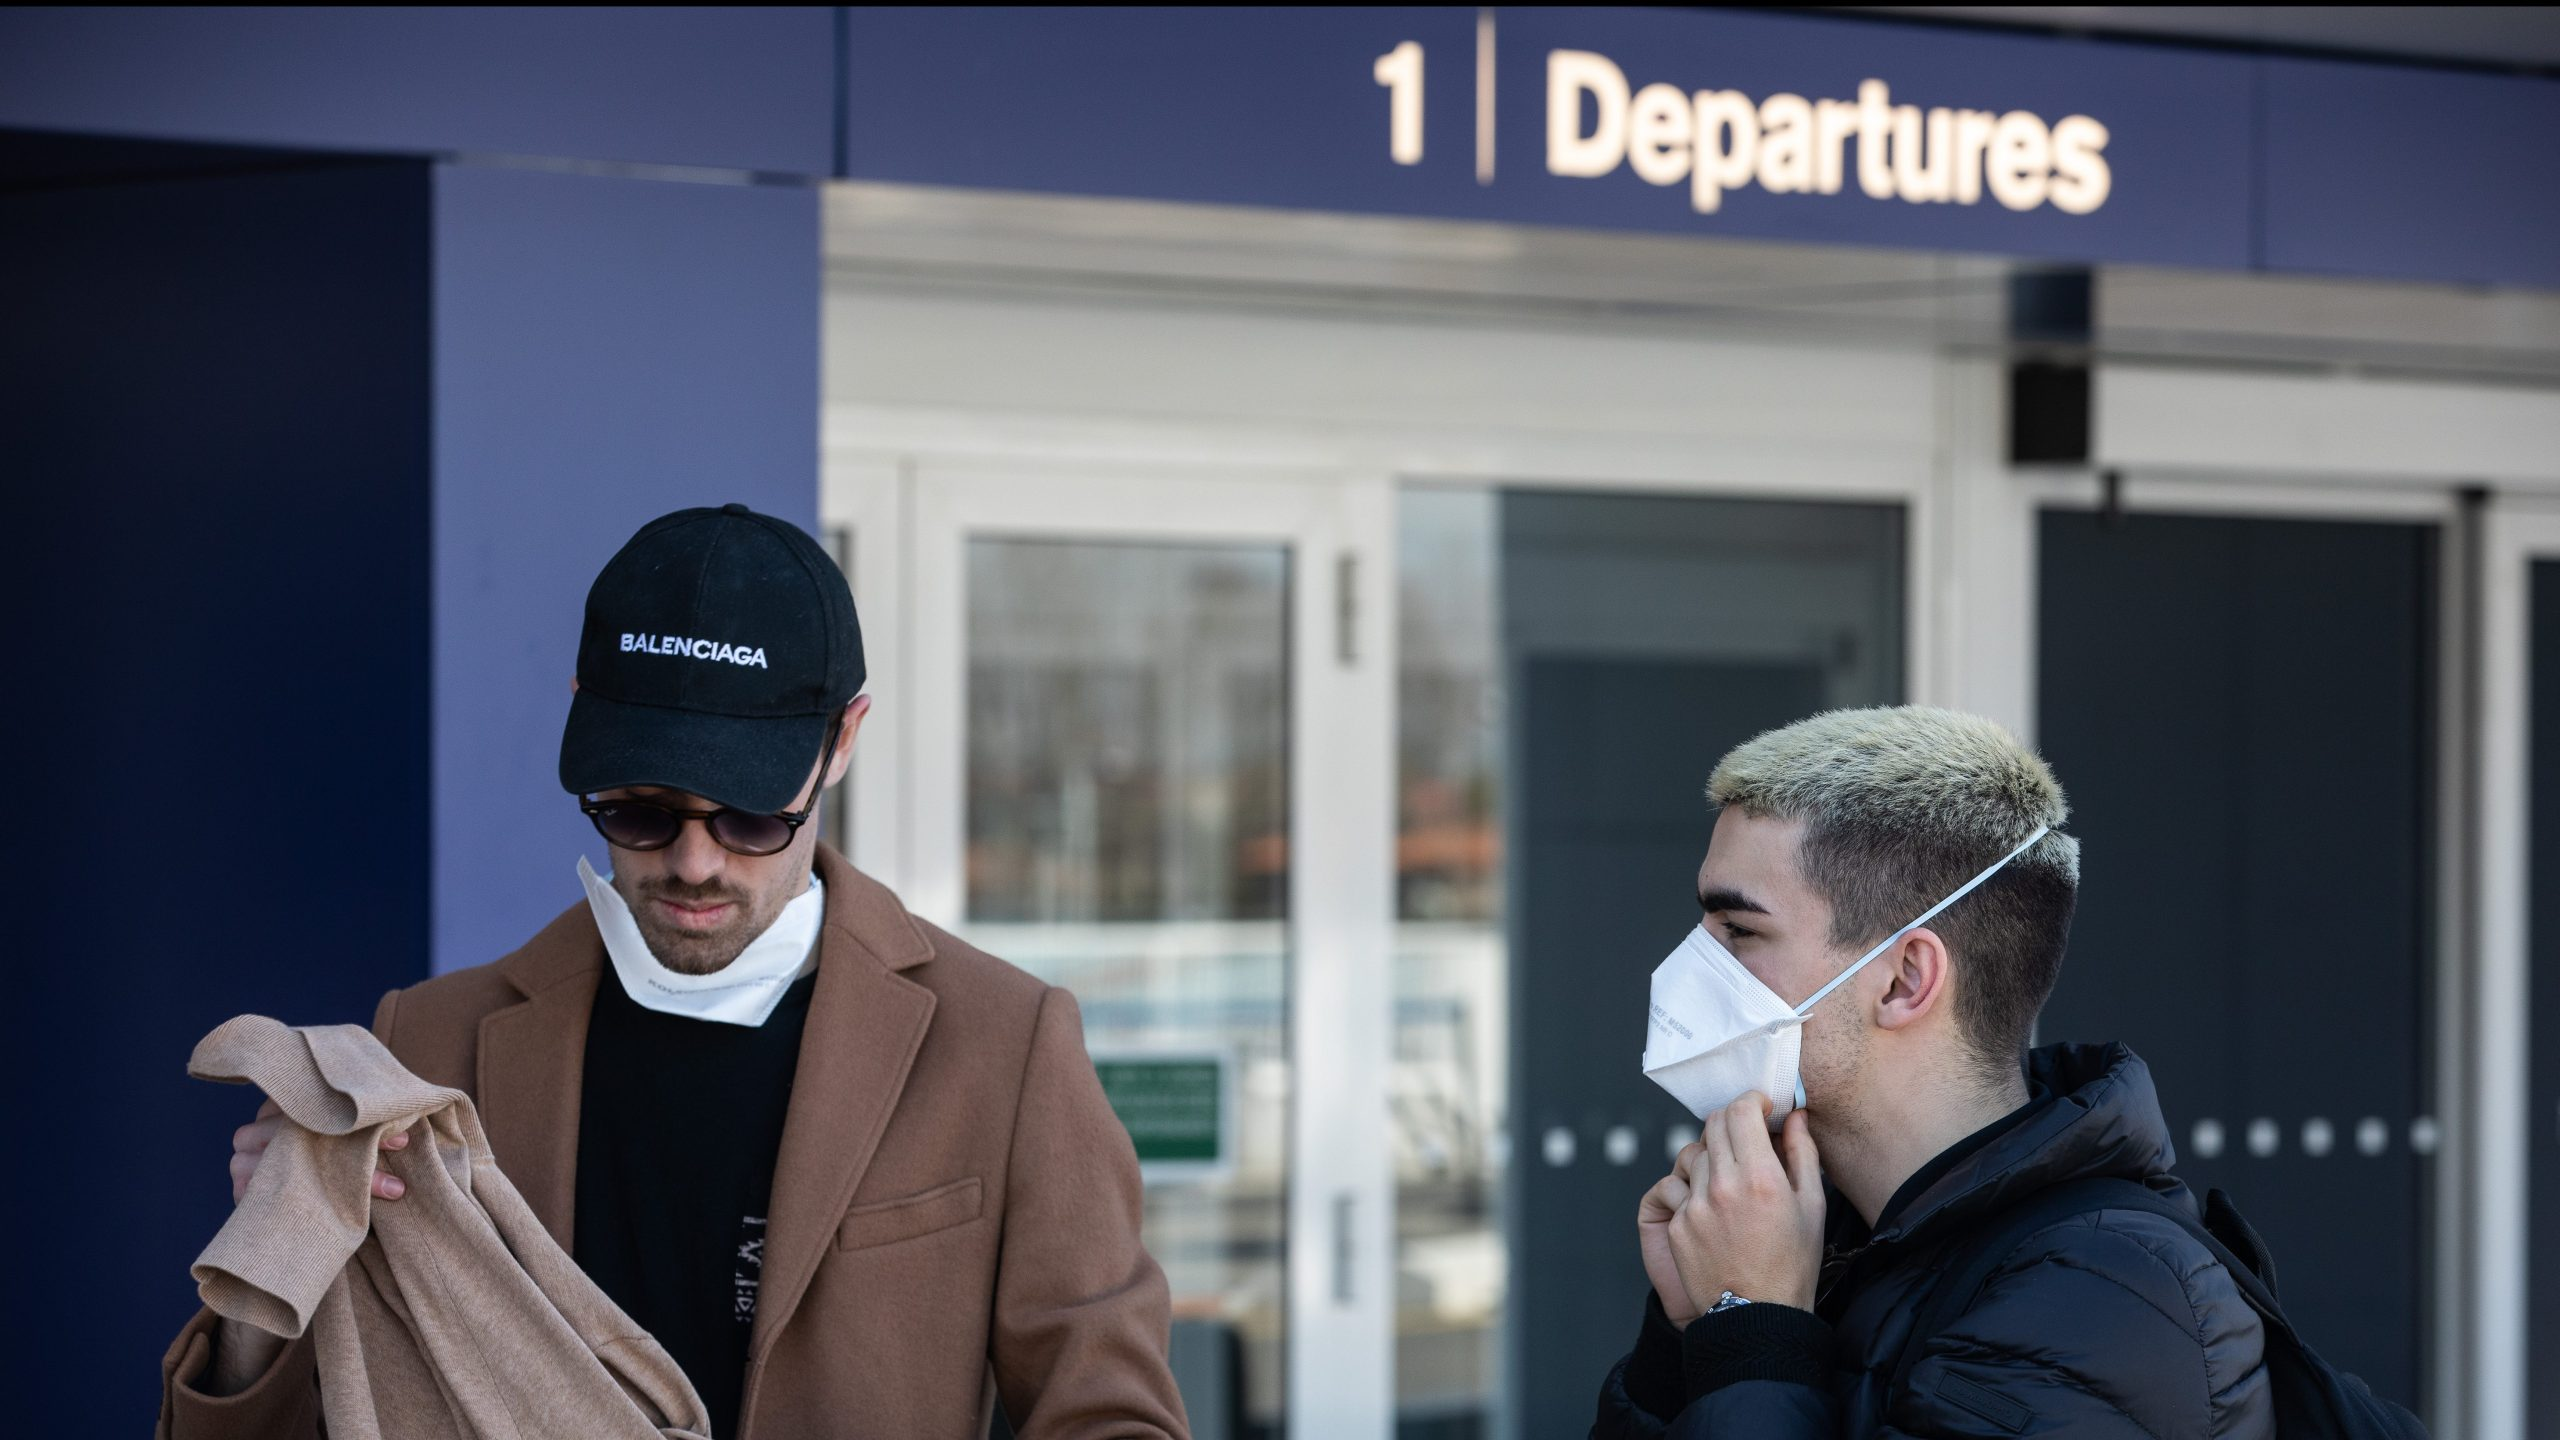 "MILAN, ITALY - MARCH 08: Two young men, wearing face masks, stand in front of the departure terminal at Linate, Milan's city airport, on March 08, 2020 in Milan, Italy. Prime Minister Giuseppe Conte announced overnight a ""national emergency"" due to the coronavirus outbreak and imposed quarantines on the Lombardy and Veneto regions, which contain roughly a quarter of the country's population. Italy has the highest number of cases and fatalities in Europe. (Photo by Emanuele Cremaschi/Getty Images)"